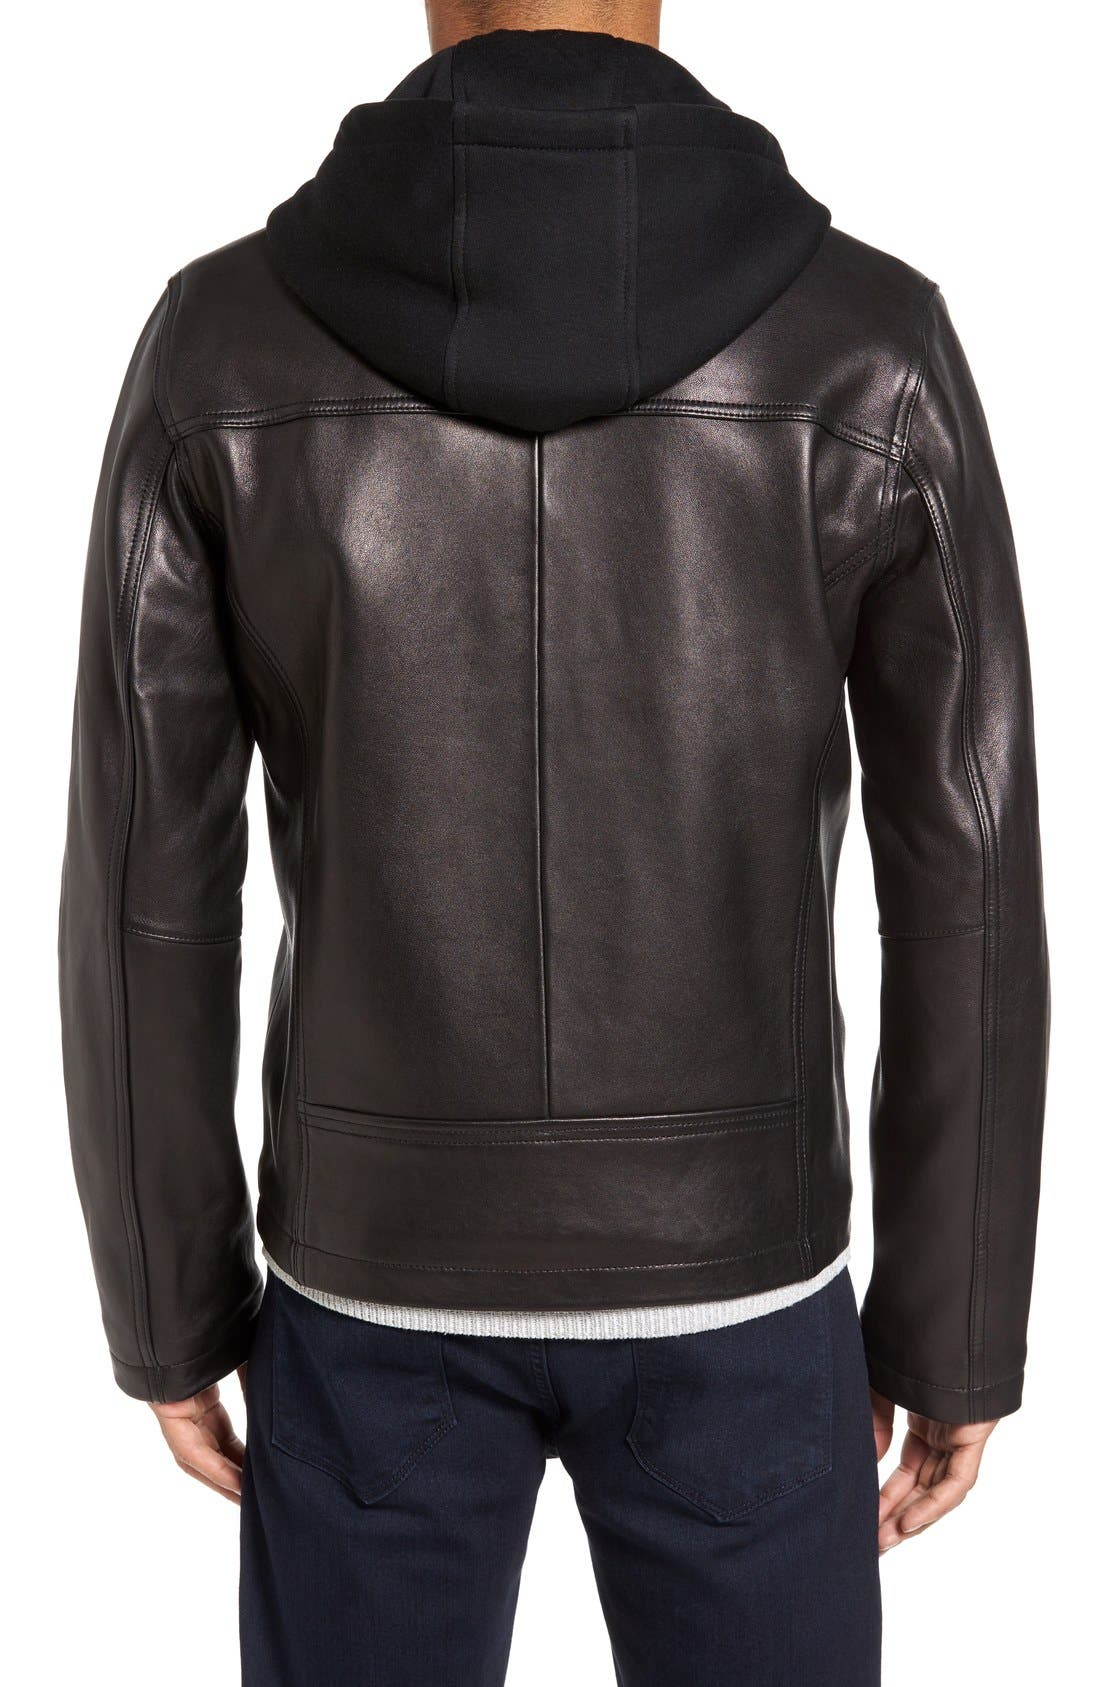 Leather Jacket with Removable Hooded Bib,                             Alternate thumbnail 2, color,                             Black